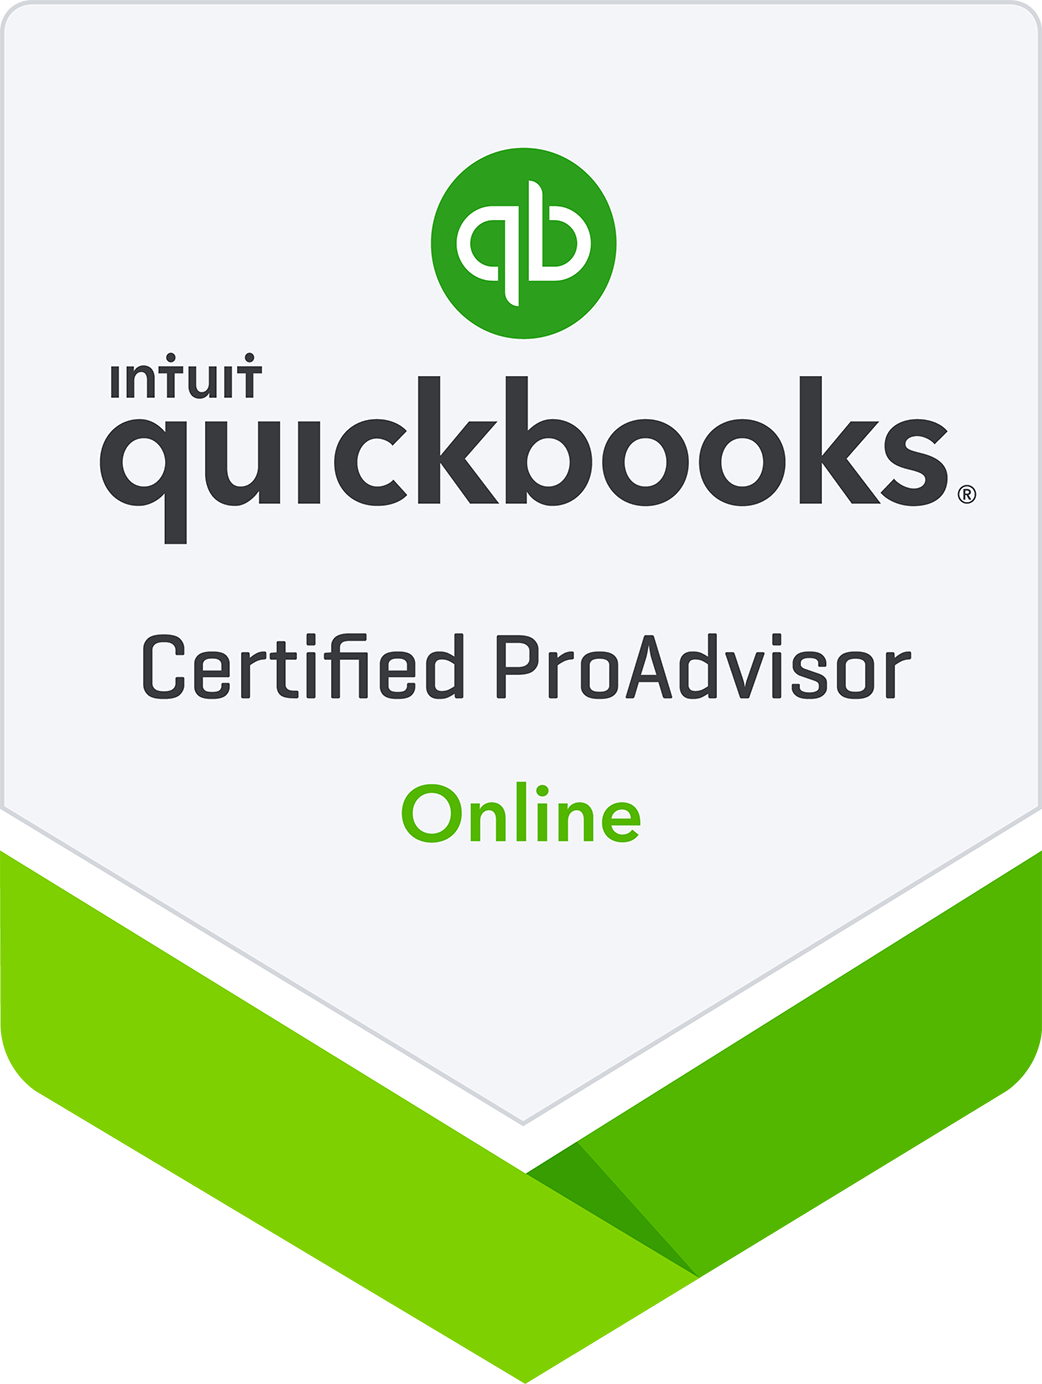 QuickBooks Online Proadvisor Certification, Ocala, FL, Celebration, FL, The Villages, FL and surrounding cities